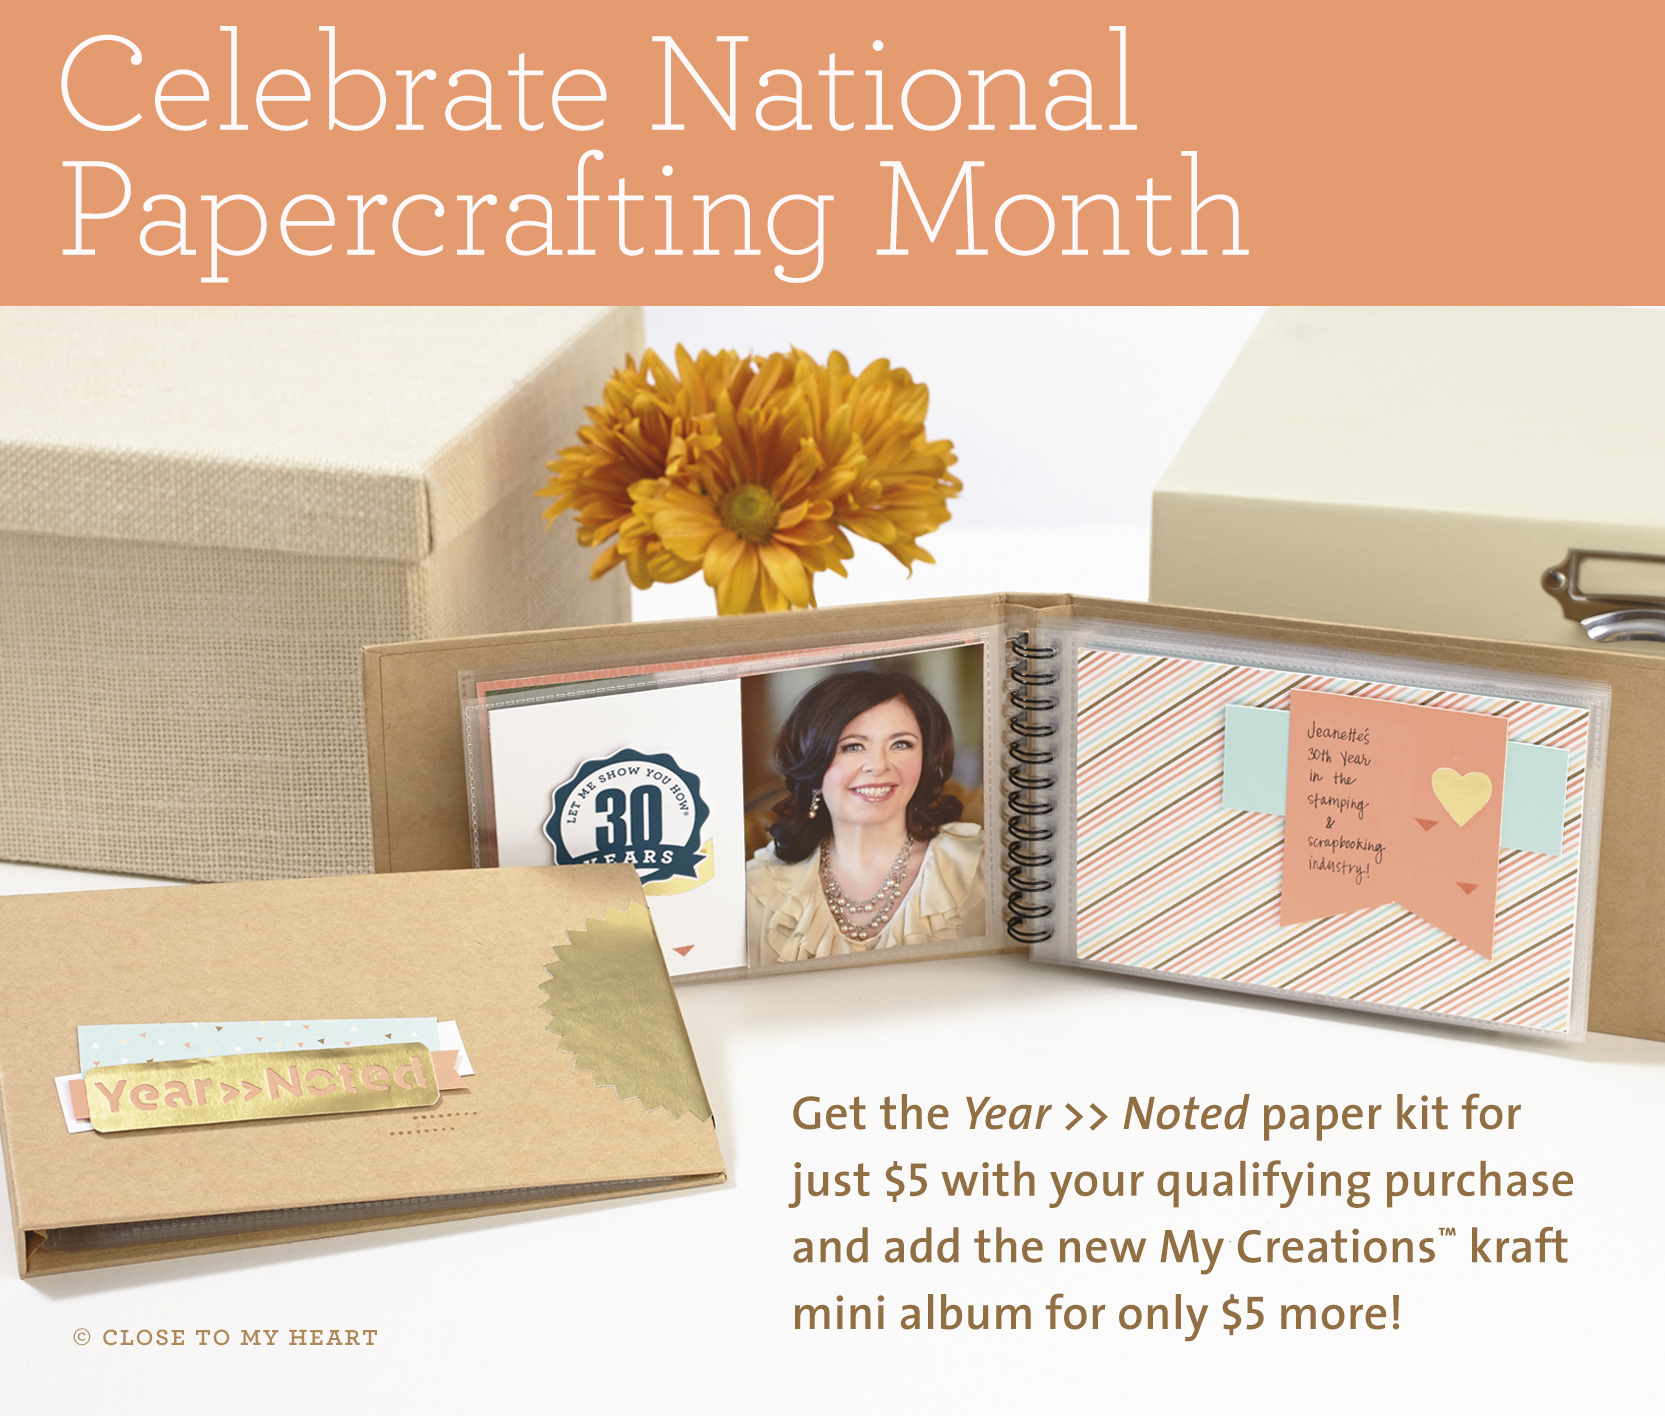 CTMH January Special - National Papercrafting Month Promotion